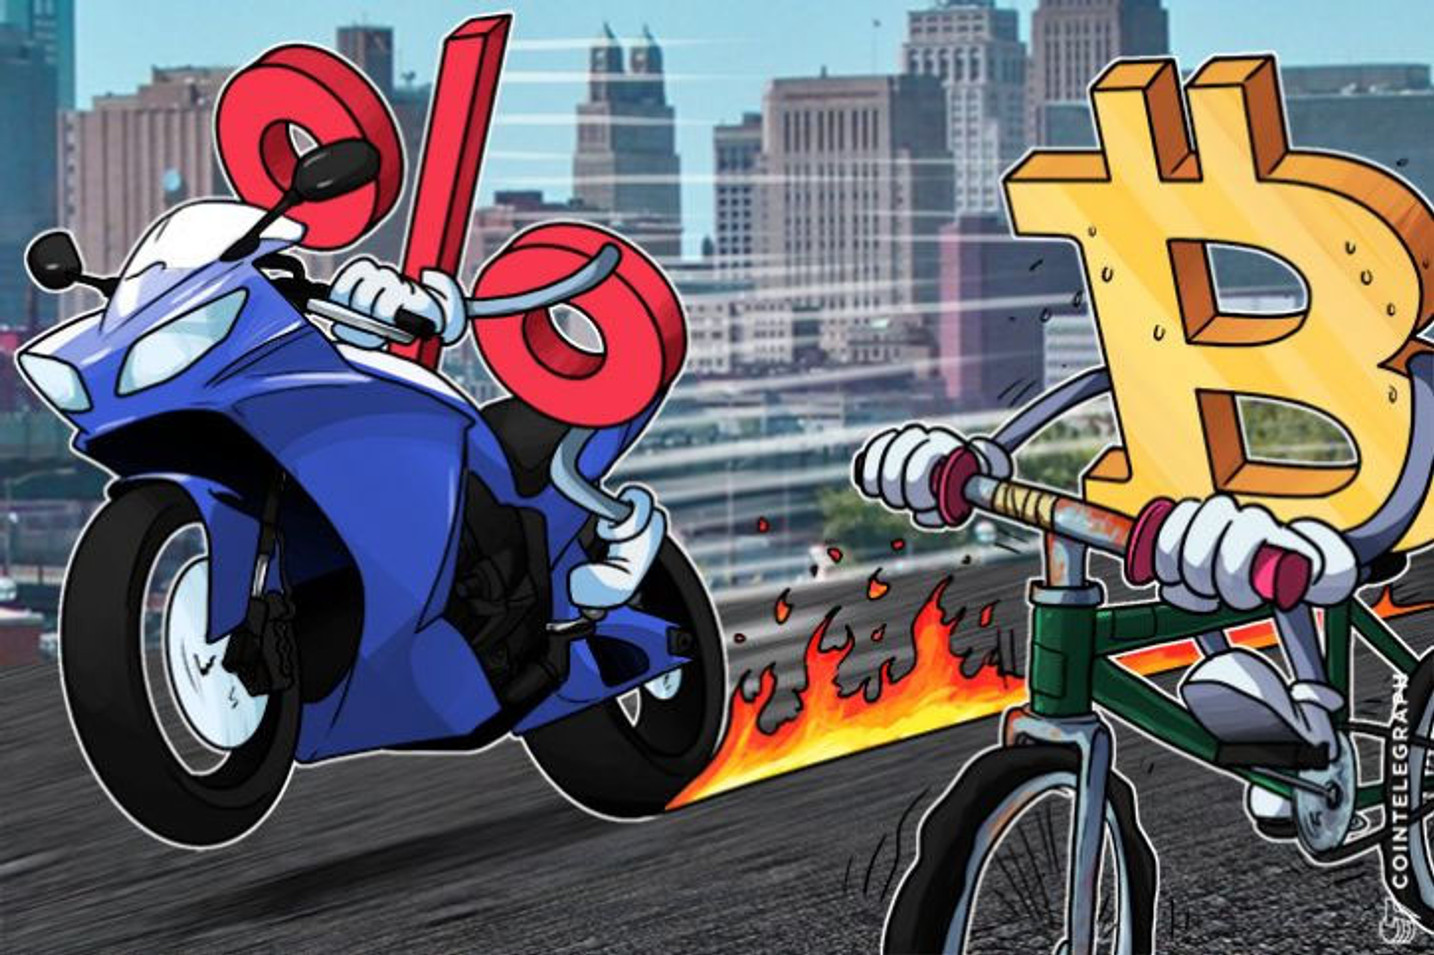 Bitcoin Fee Furore Sees Mexican Exchange Bitso Charge For Withdrawals